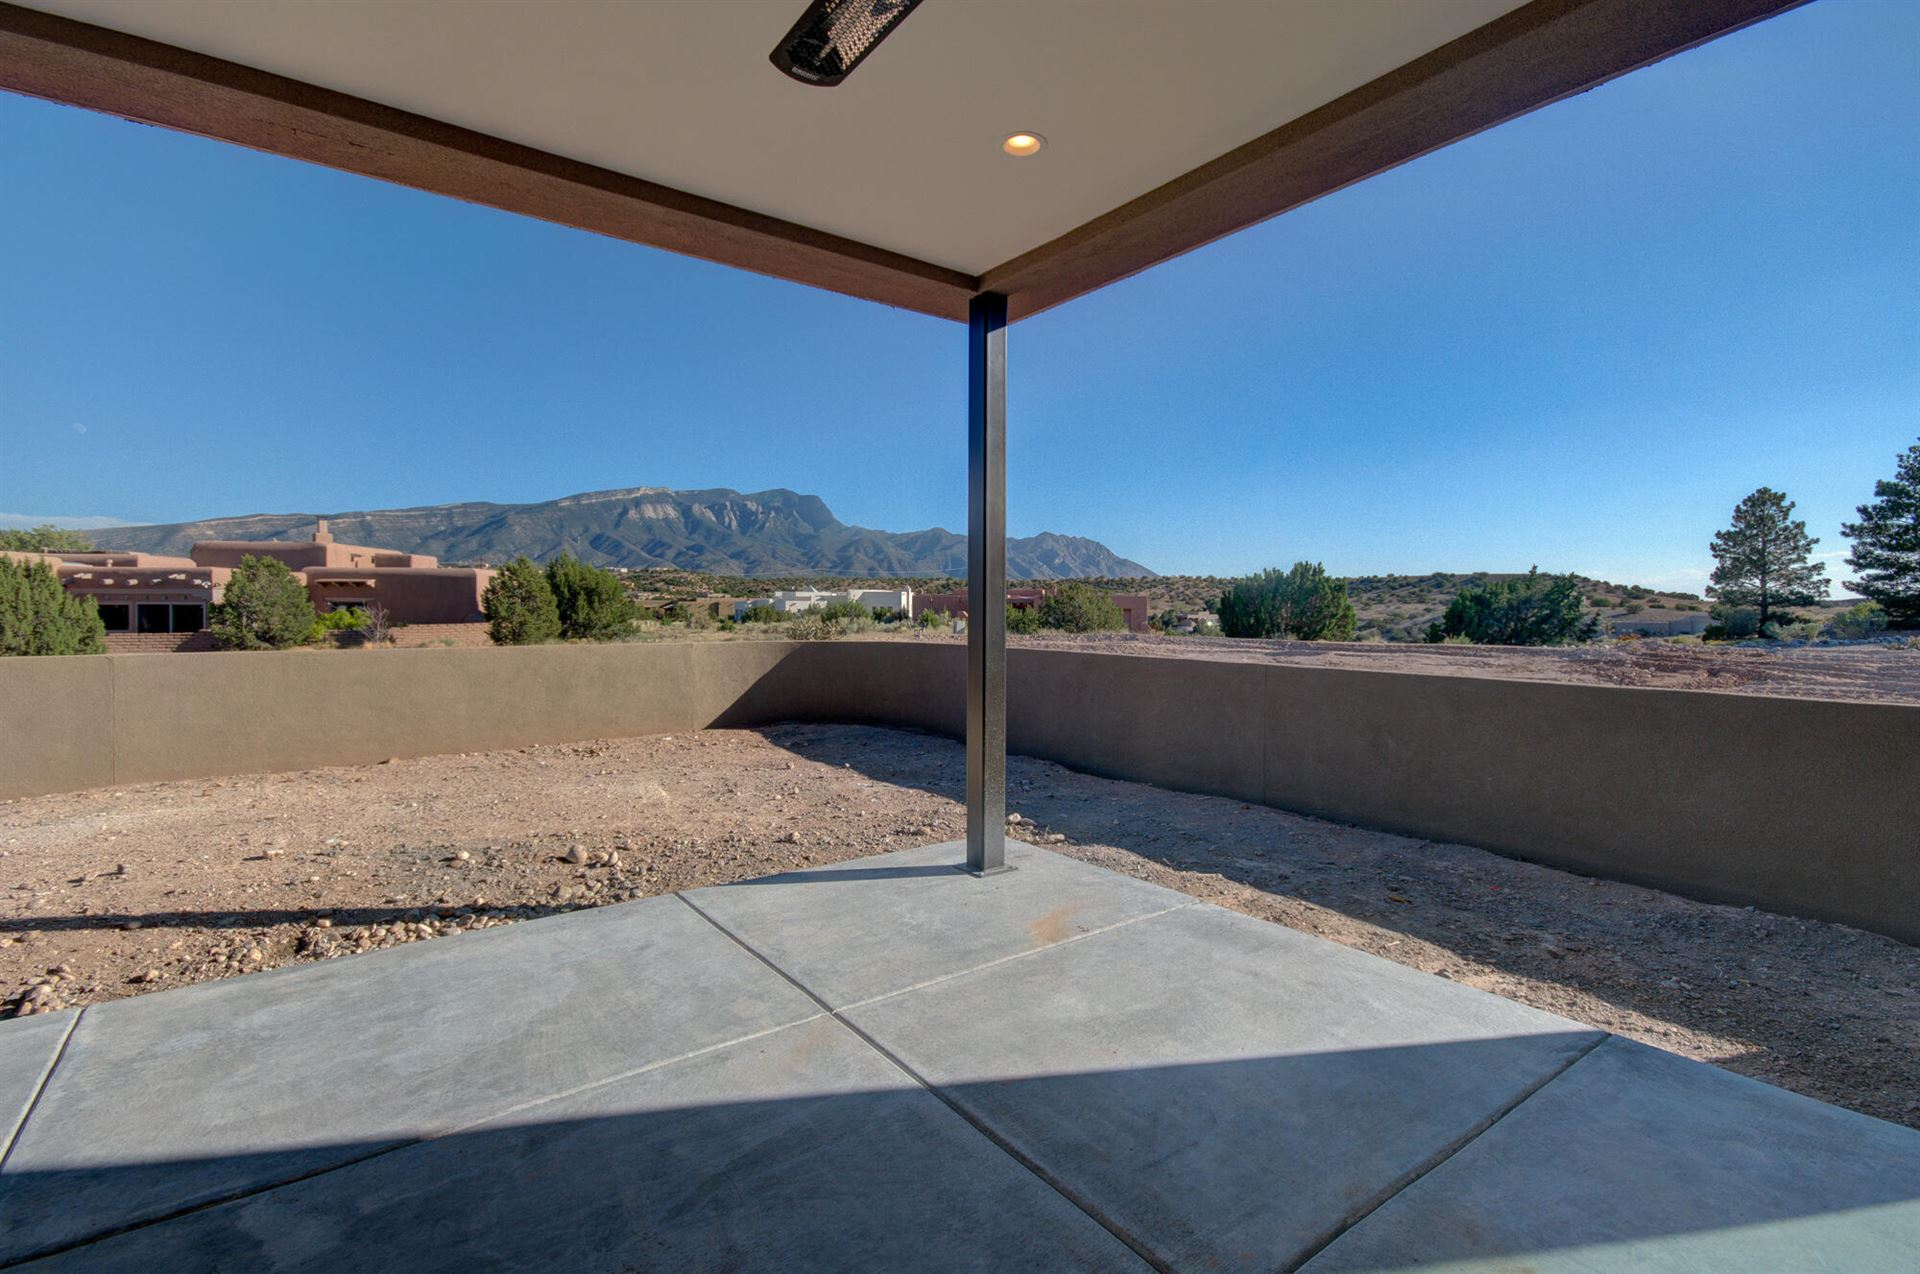 Photo of 26 Second Mesa Drive, Placitas, NM 87043 (MLS # 967315)